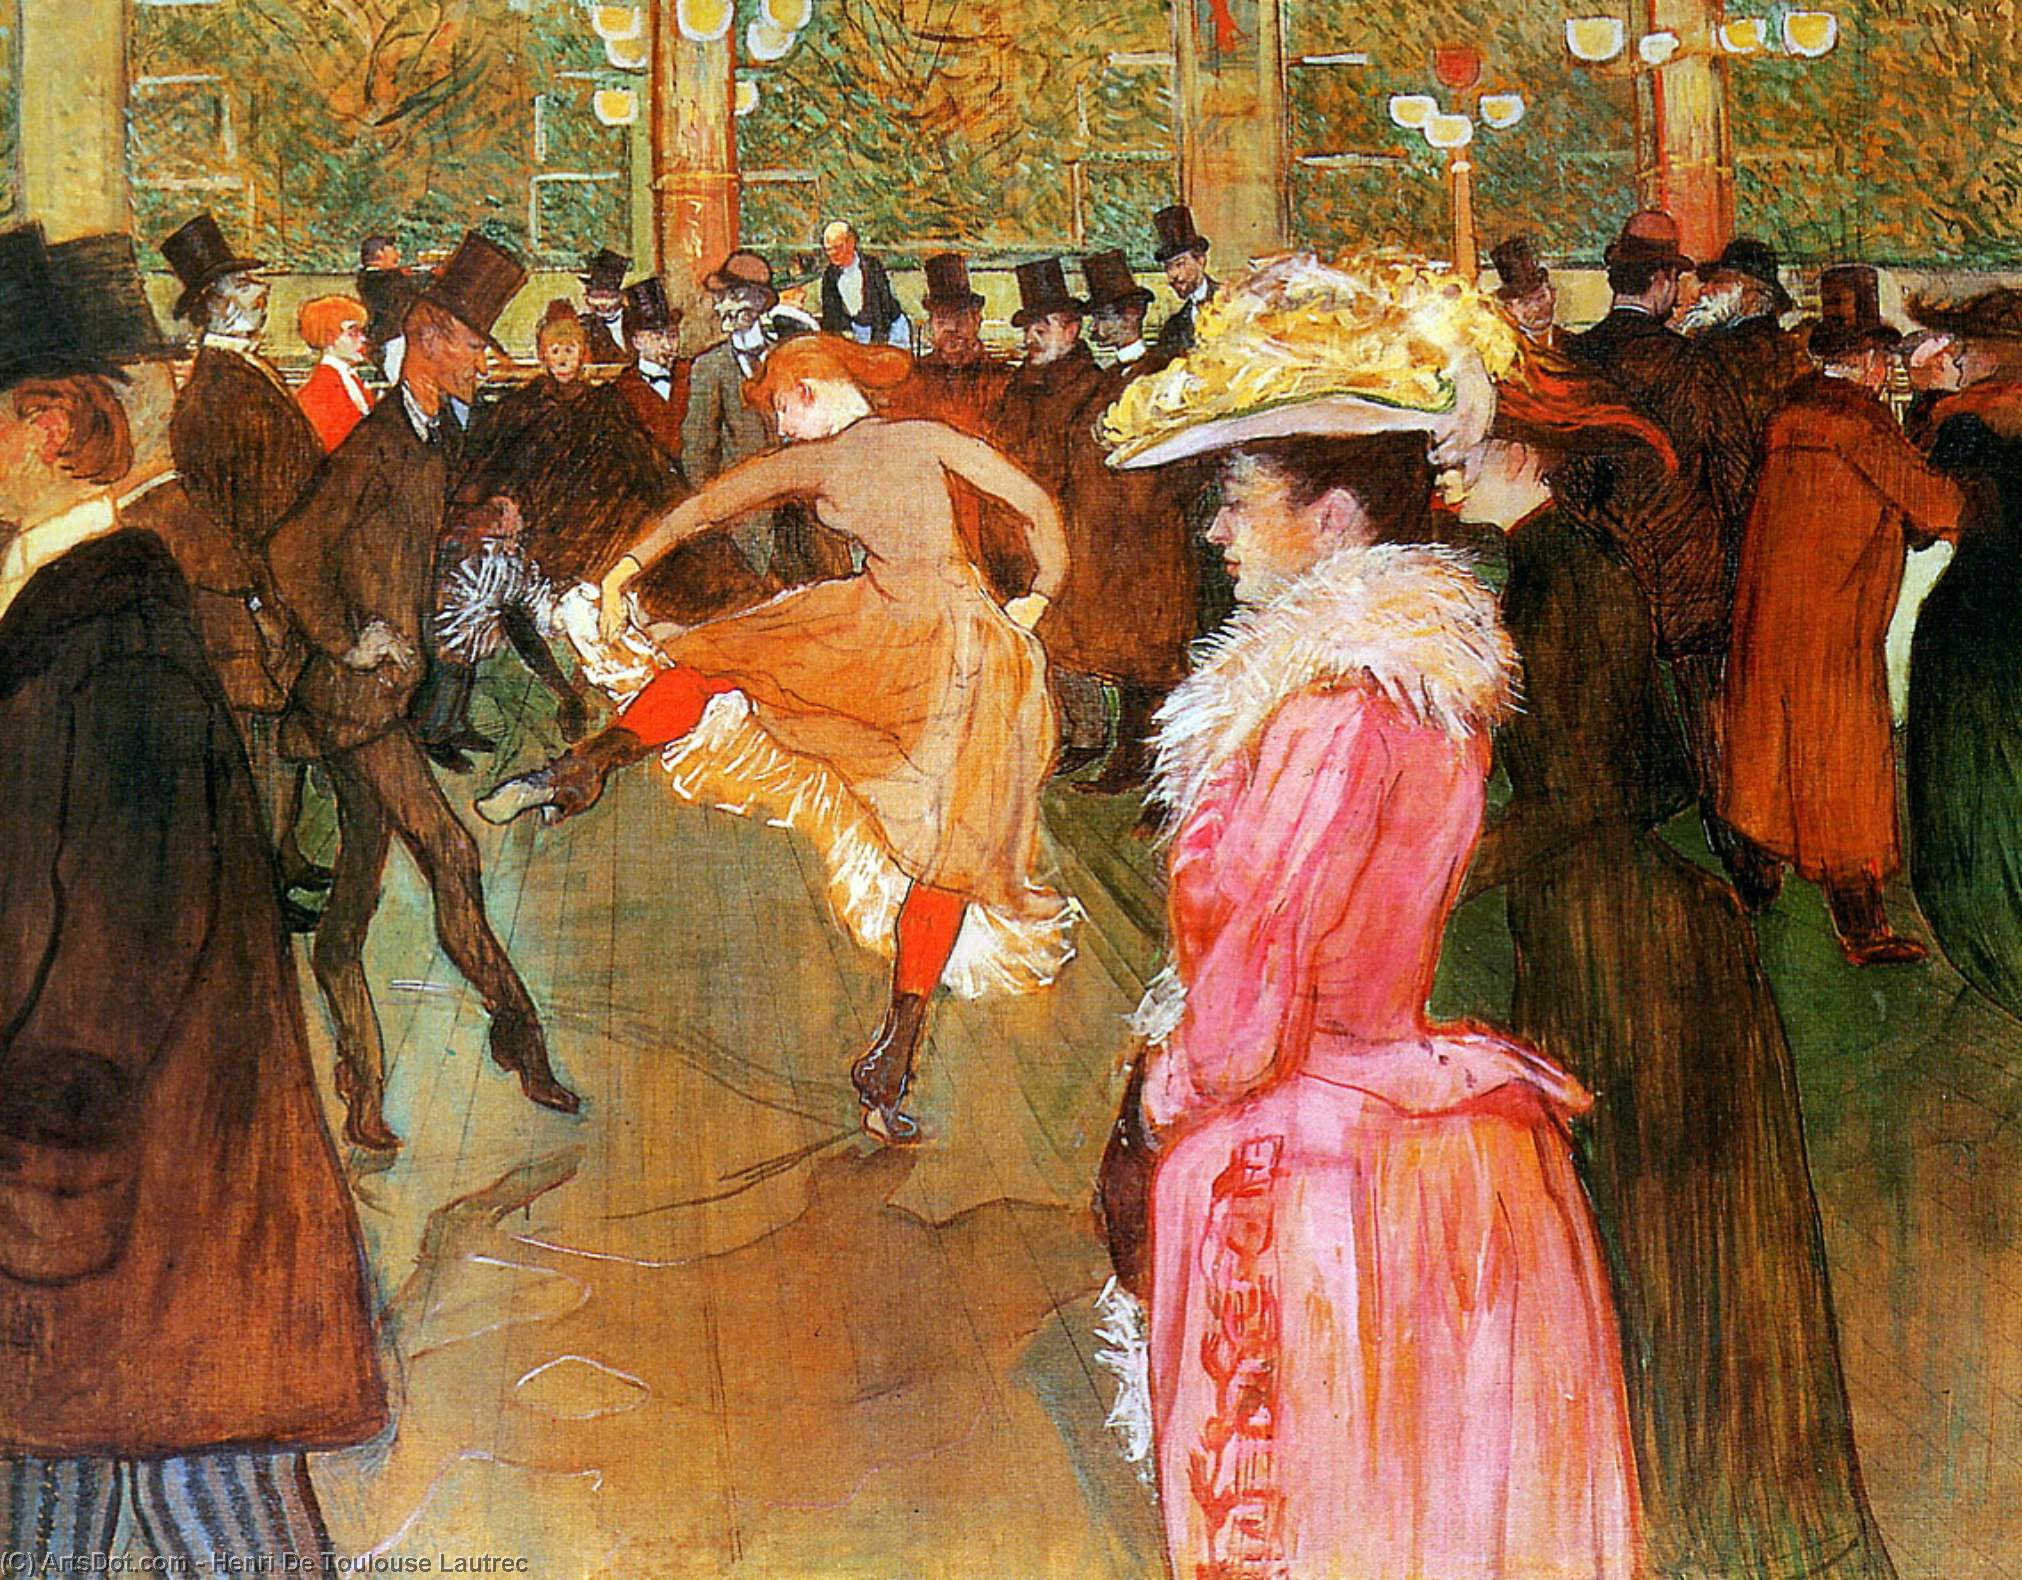 Tanz in das moulin rouge Sonne von Henri De Toulouse Lautrec (1864-1901, France)